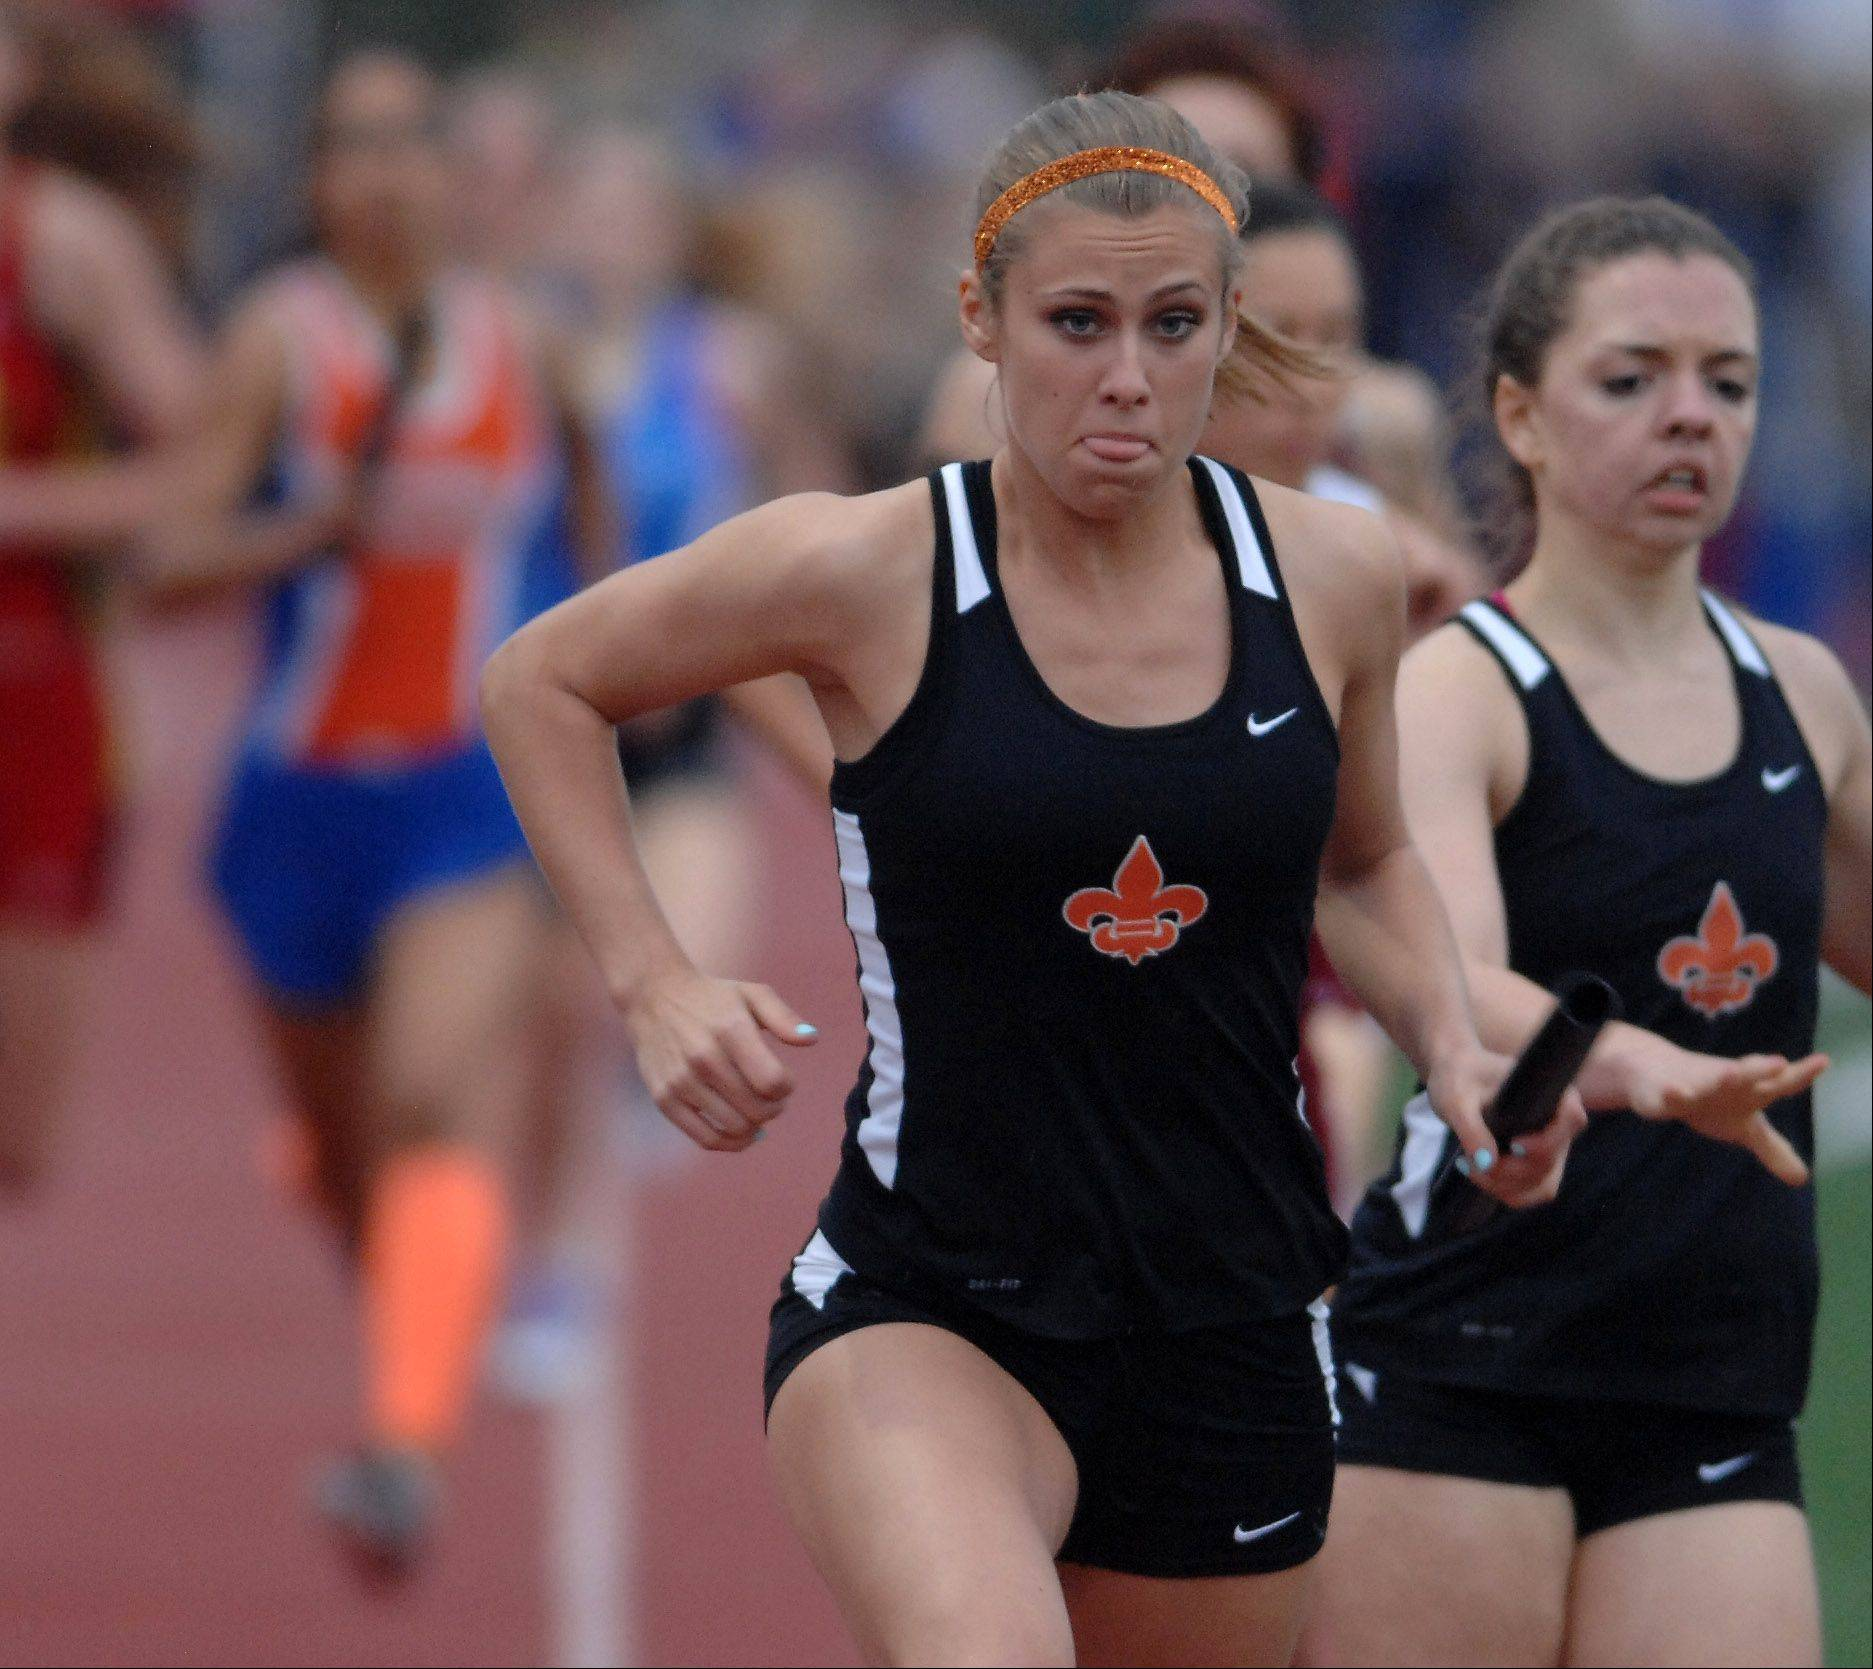 Krista Fitzmaurice of St. Charles East takes the baton to run her leg of the 3,200-meter relay during the Class 3A West Aurora girls track and field sectional Thursday.